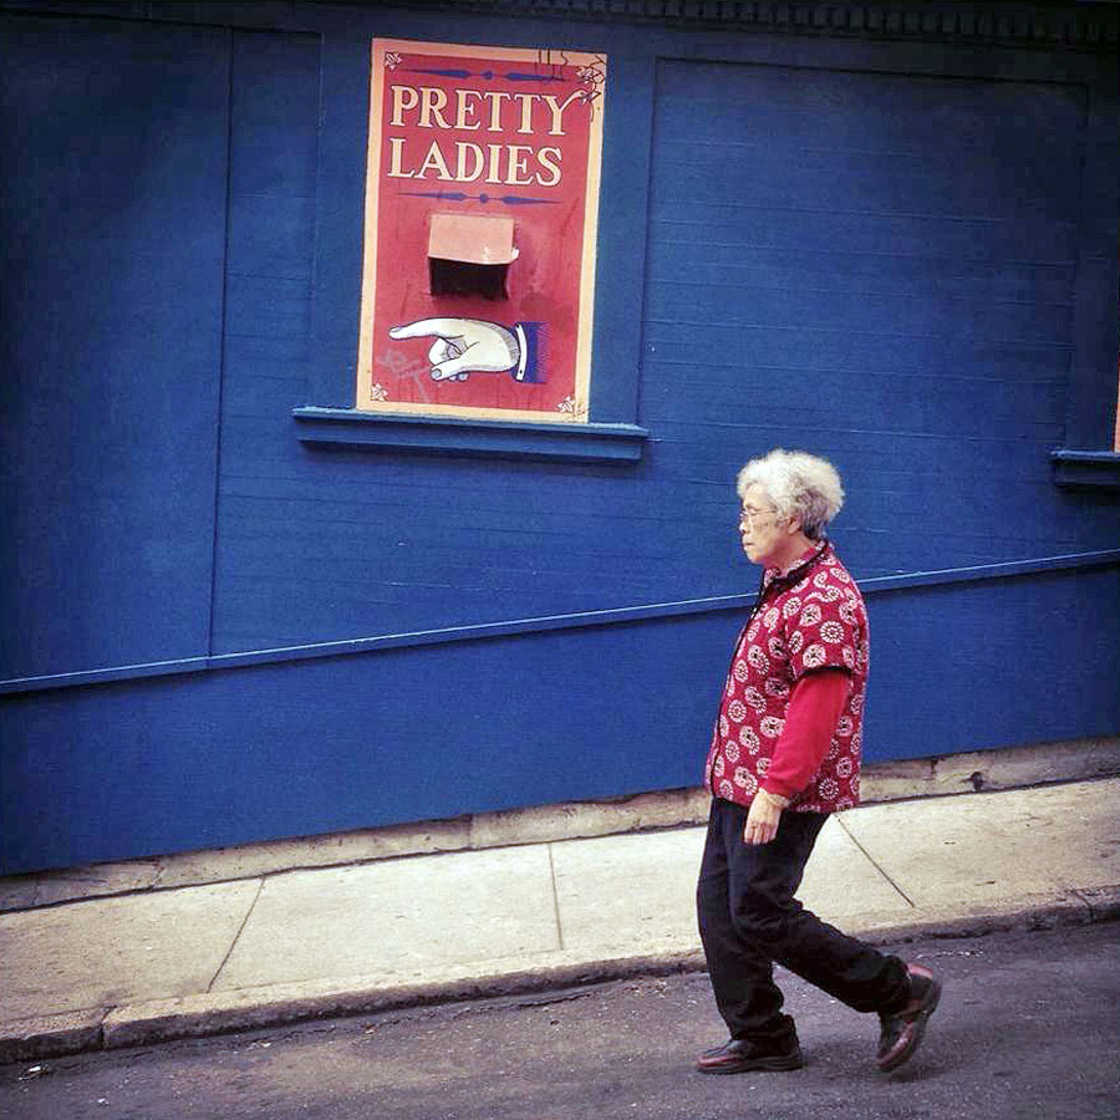 Unusual Life - The twisted street photography of Bryan Stokely